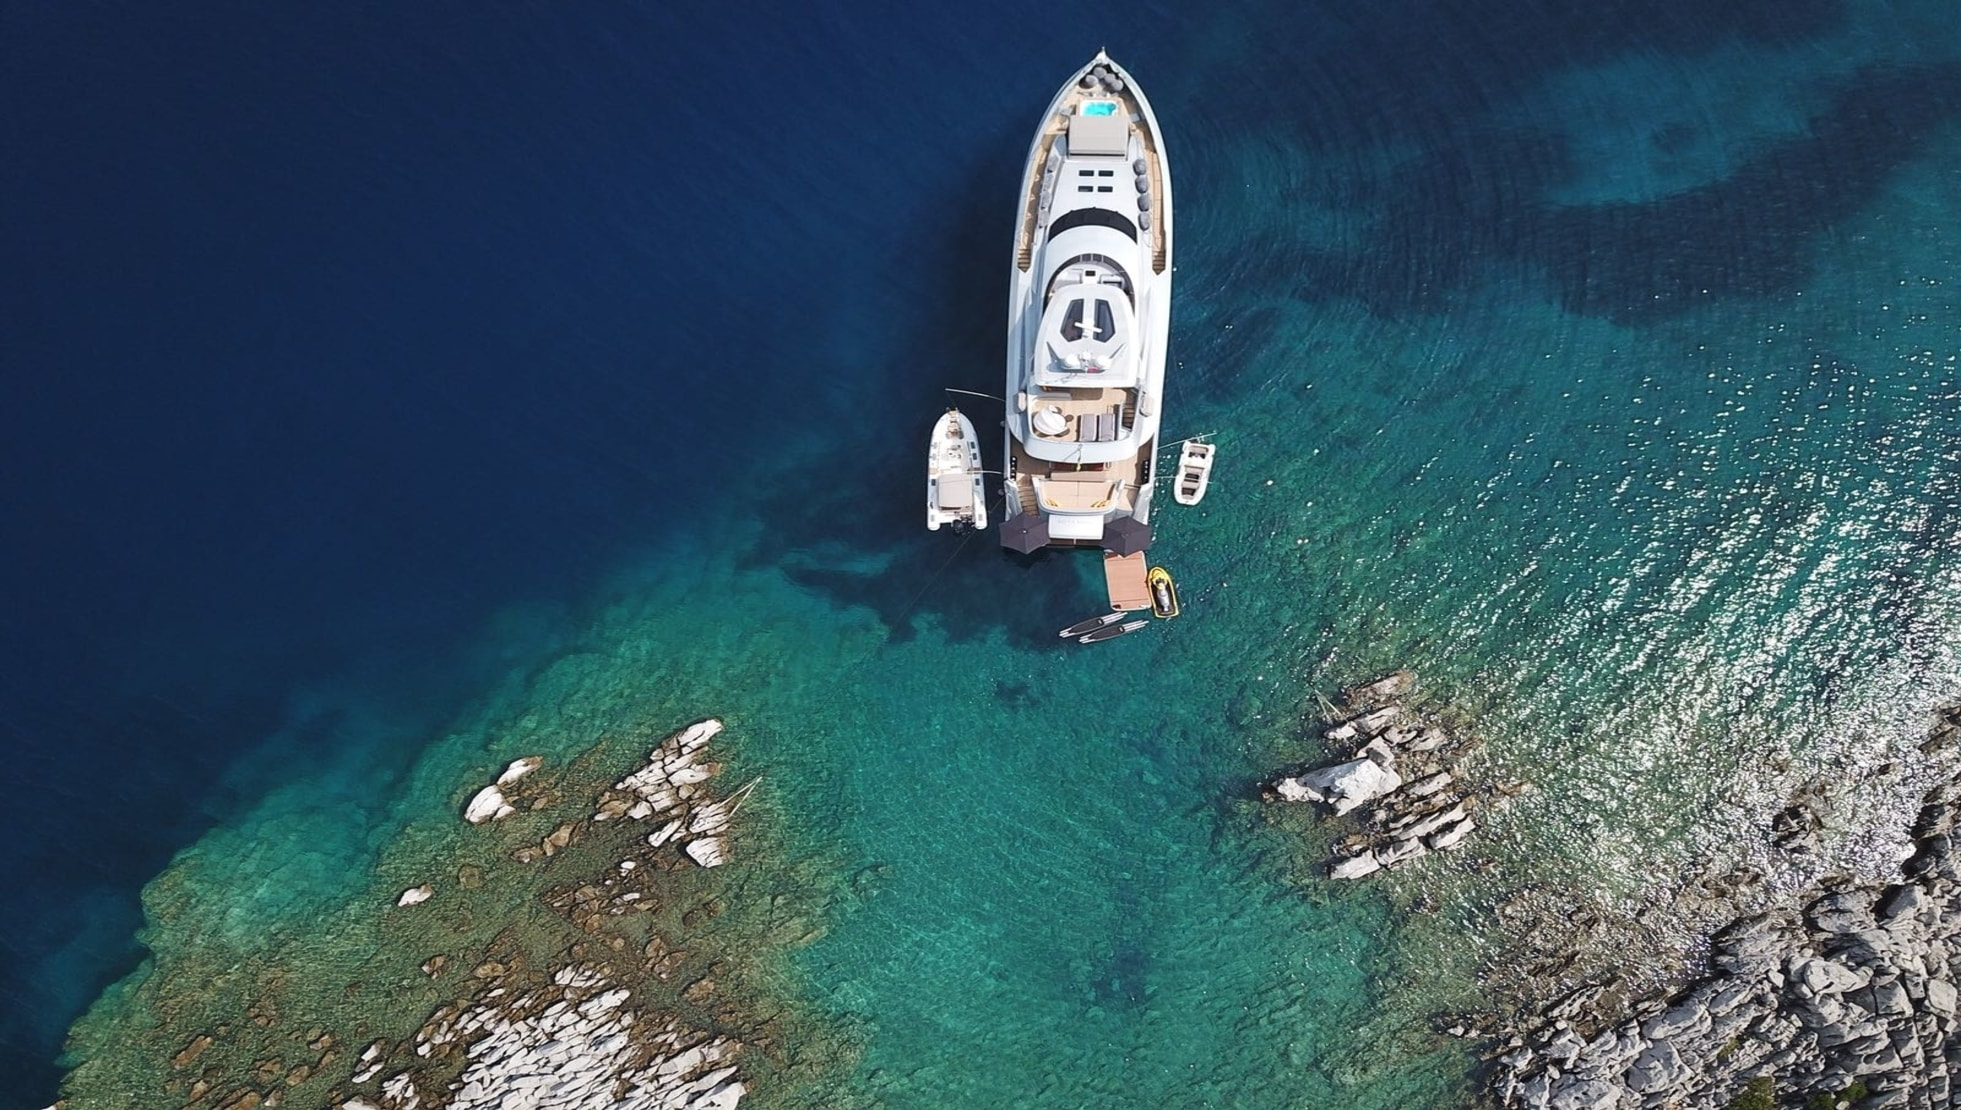 Meya Meya, a luxury yacht sailing through Greece waters.